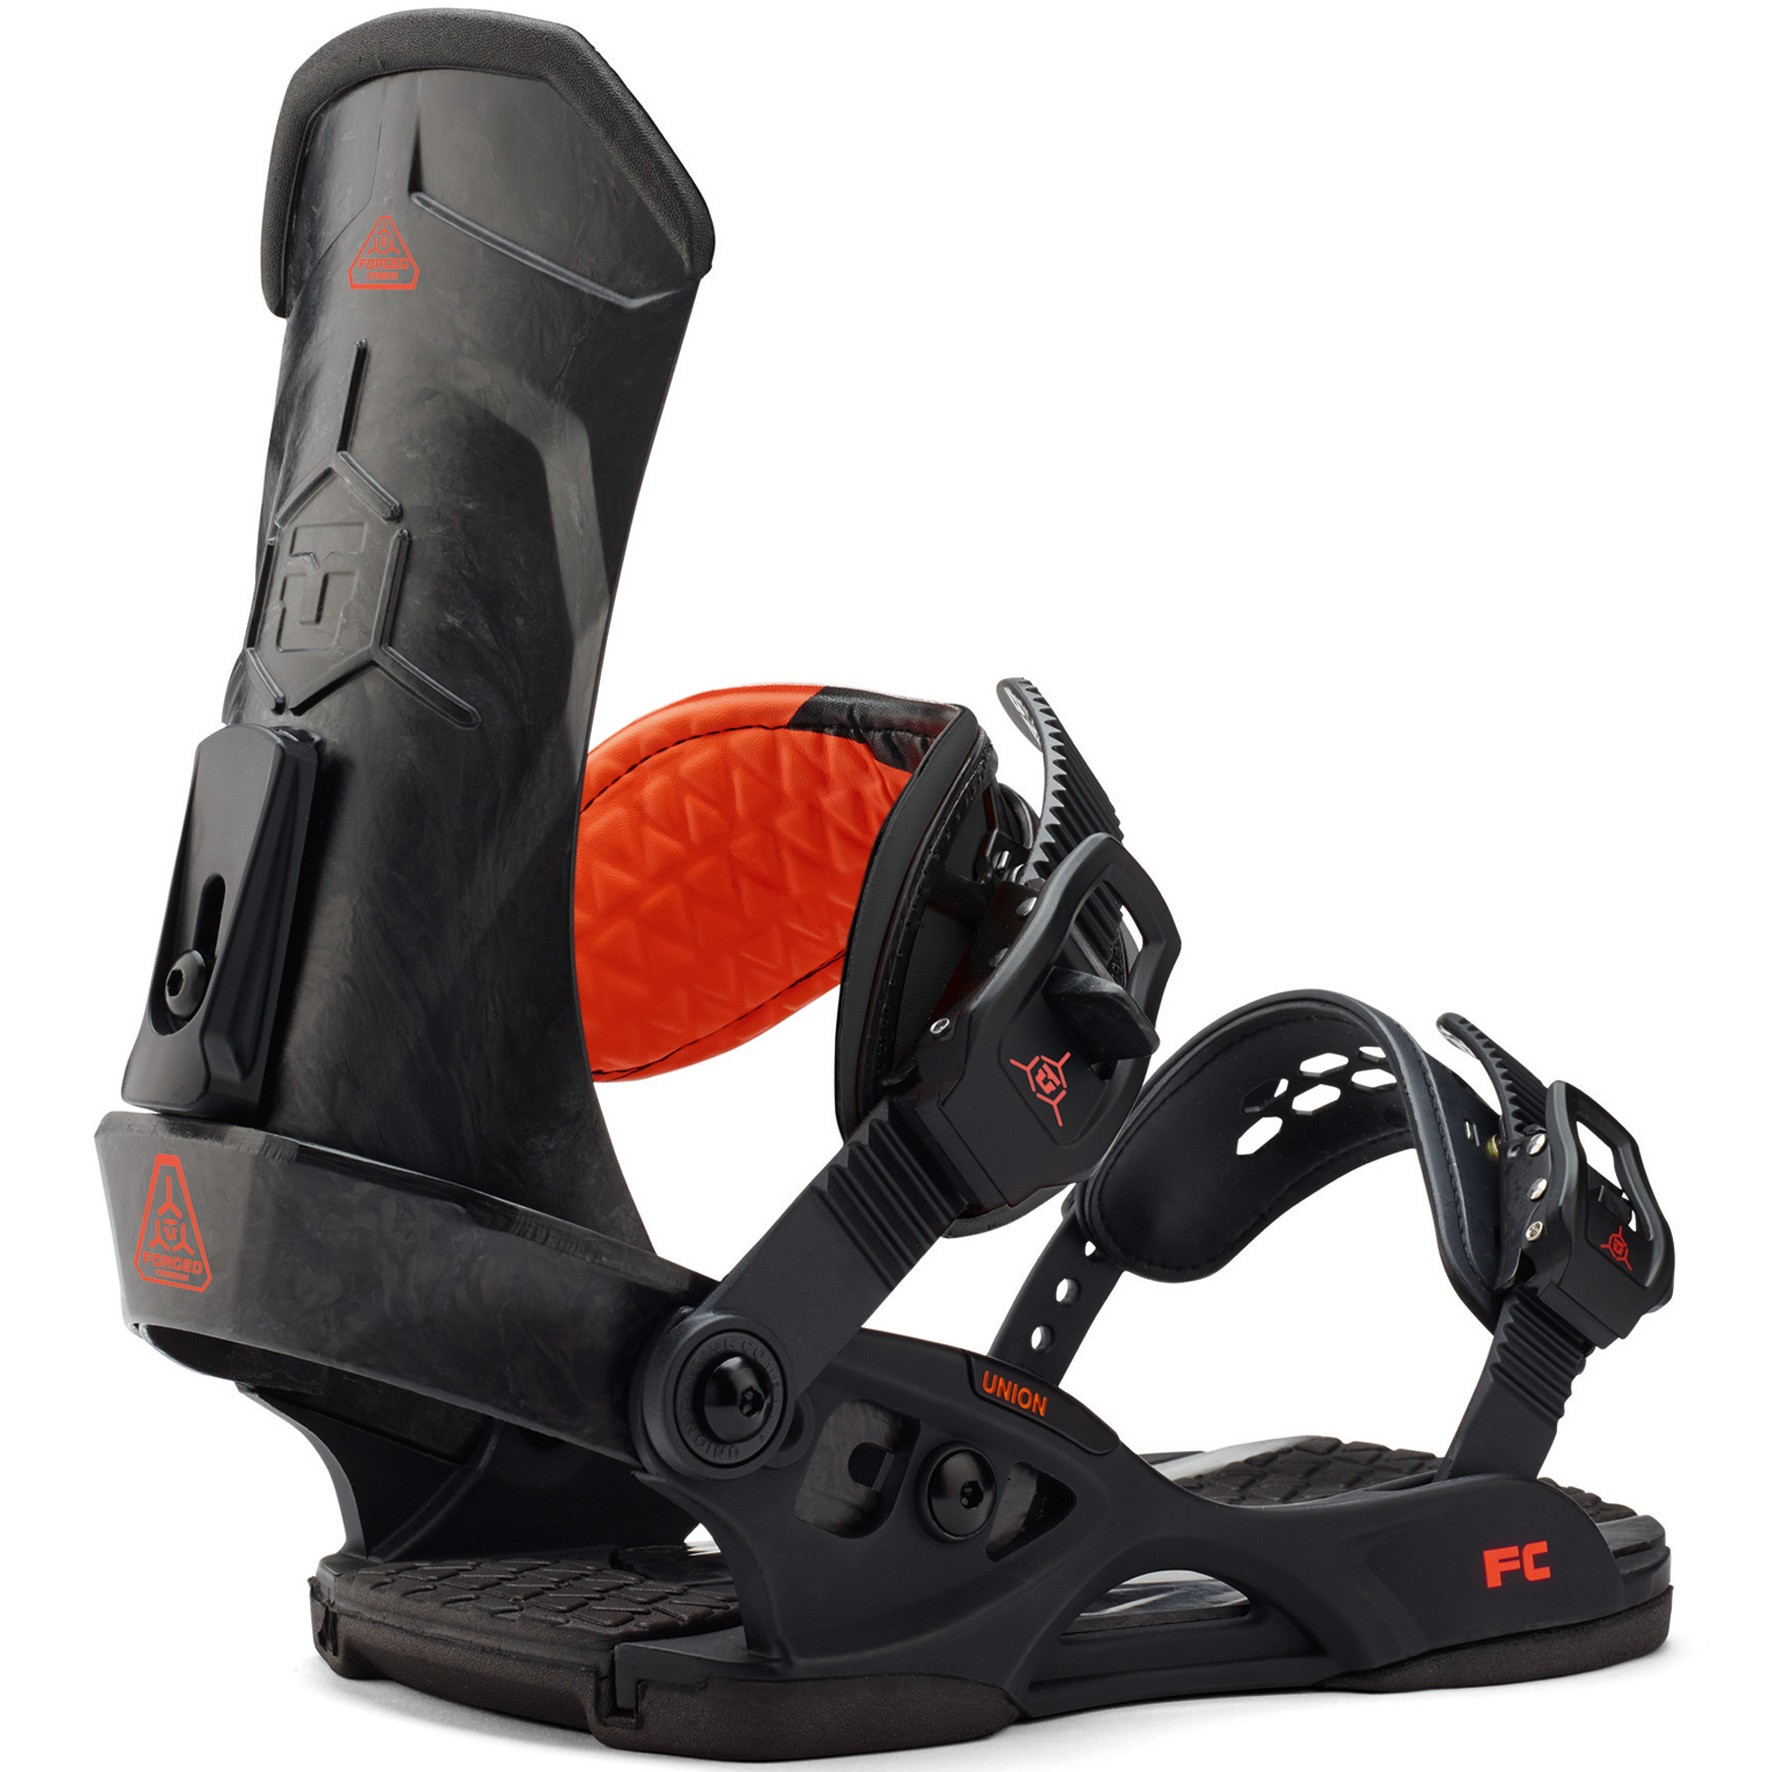 Union FC Snowboard Bindings 2015 - Black